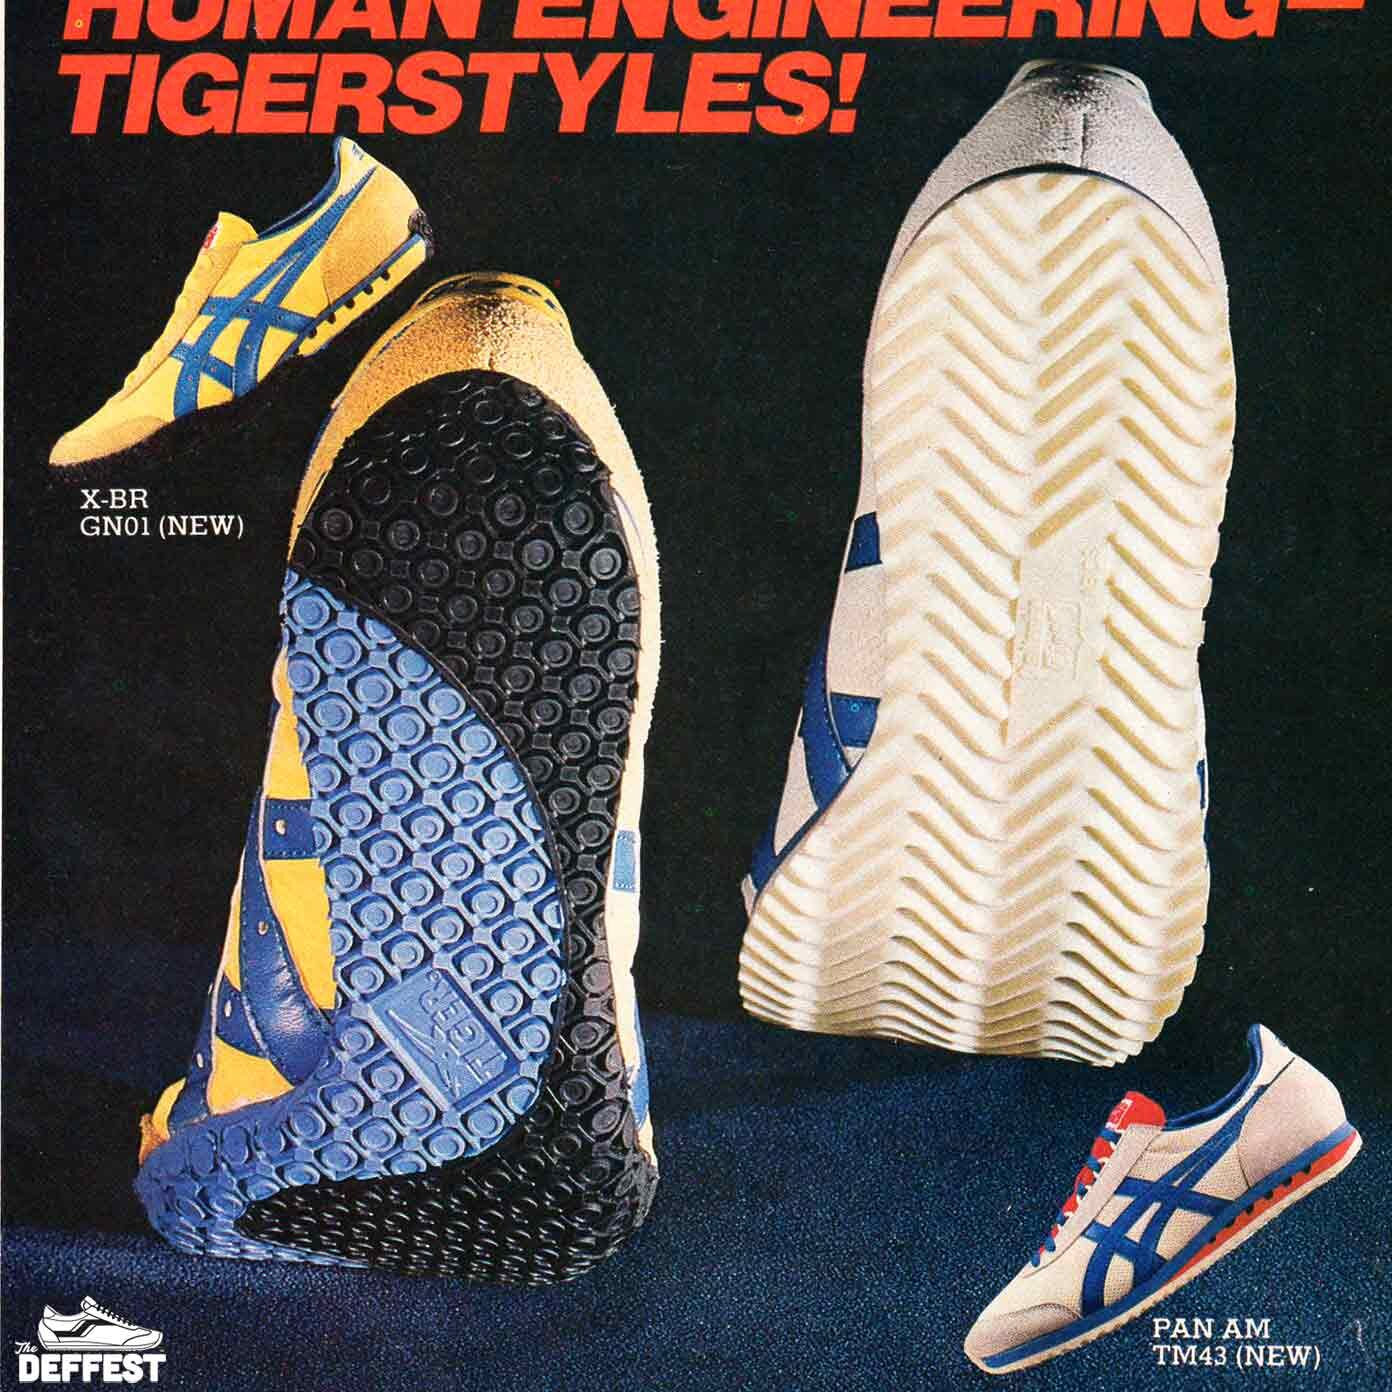 Asics 1980 Pan Am and X-BR retro sneaker ad